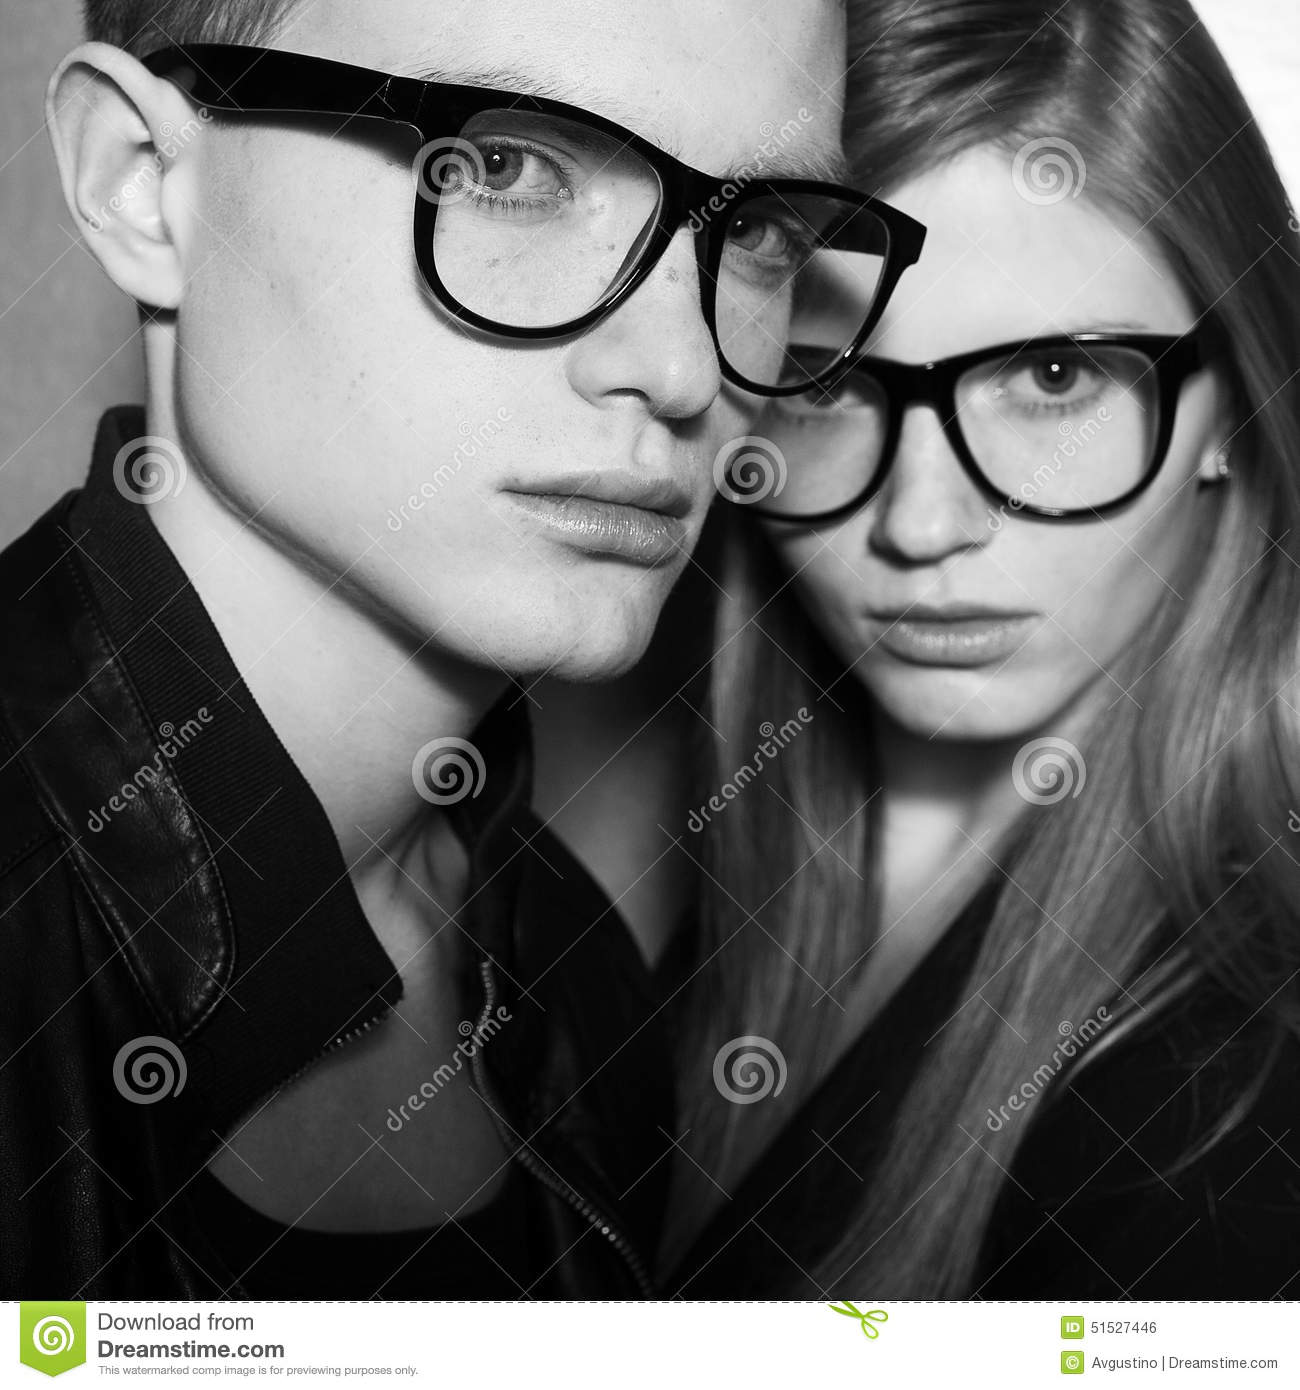 eyewear fashion  Fashion Twins In Black Clothes And Trendy Eyewear Stock Photo ...